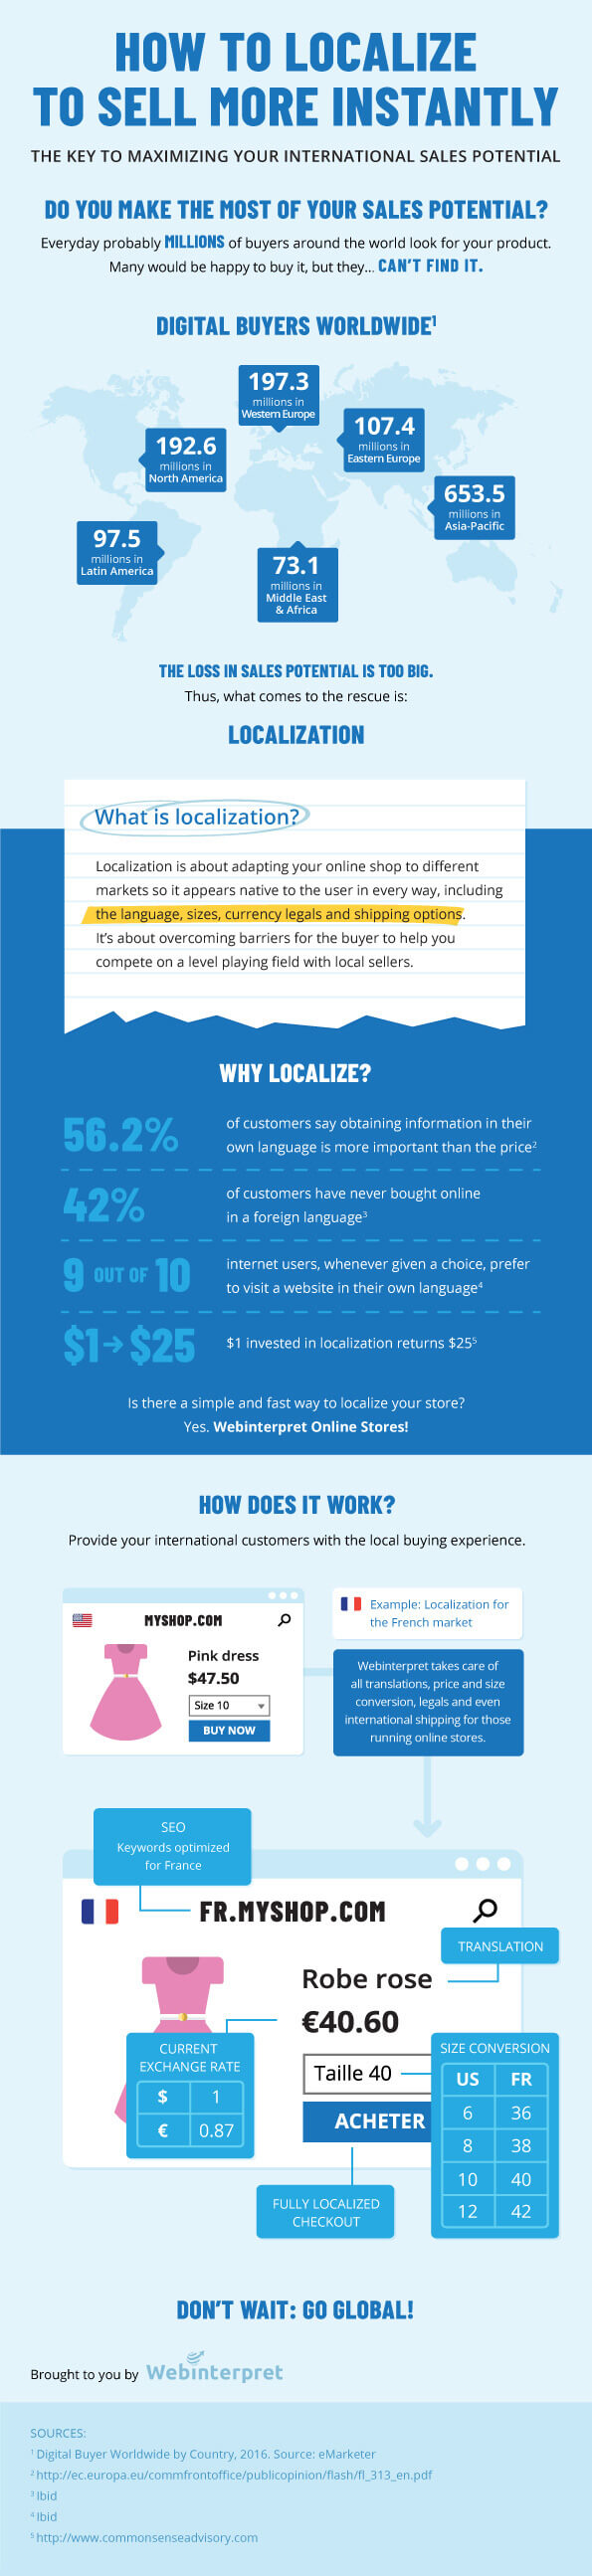 global-ecommerce-localization-infographic-short